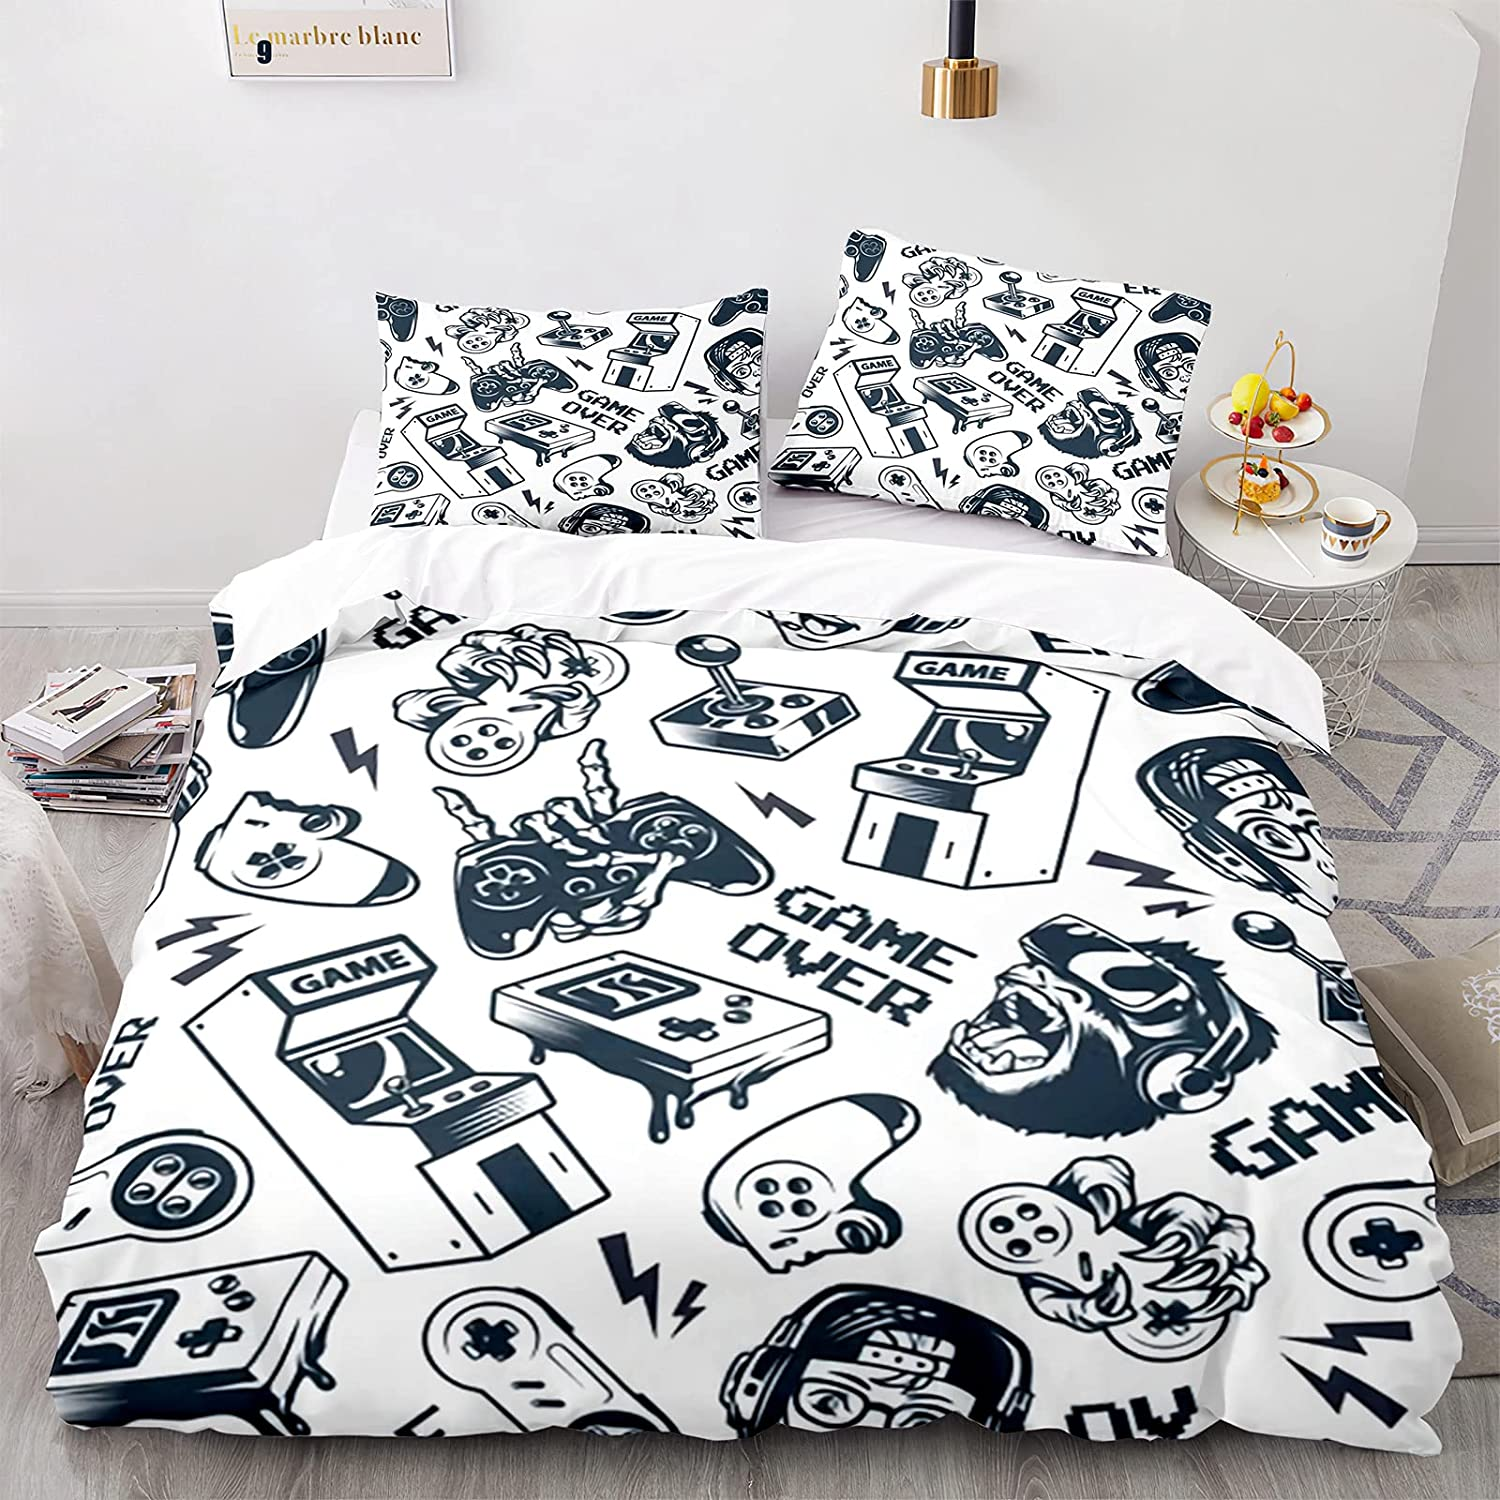 LLFG Durable for Ranking Quantity limited TOP16 Boys GiftUltra Duvet and Breathable Soft Cover